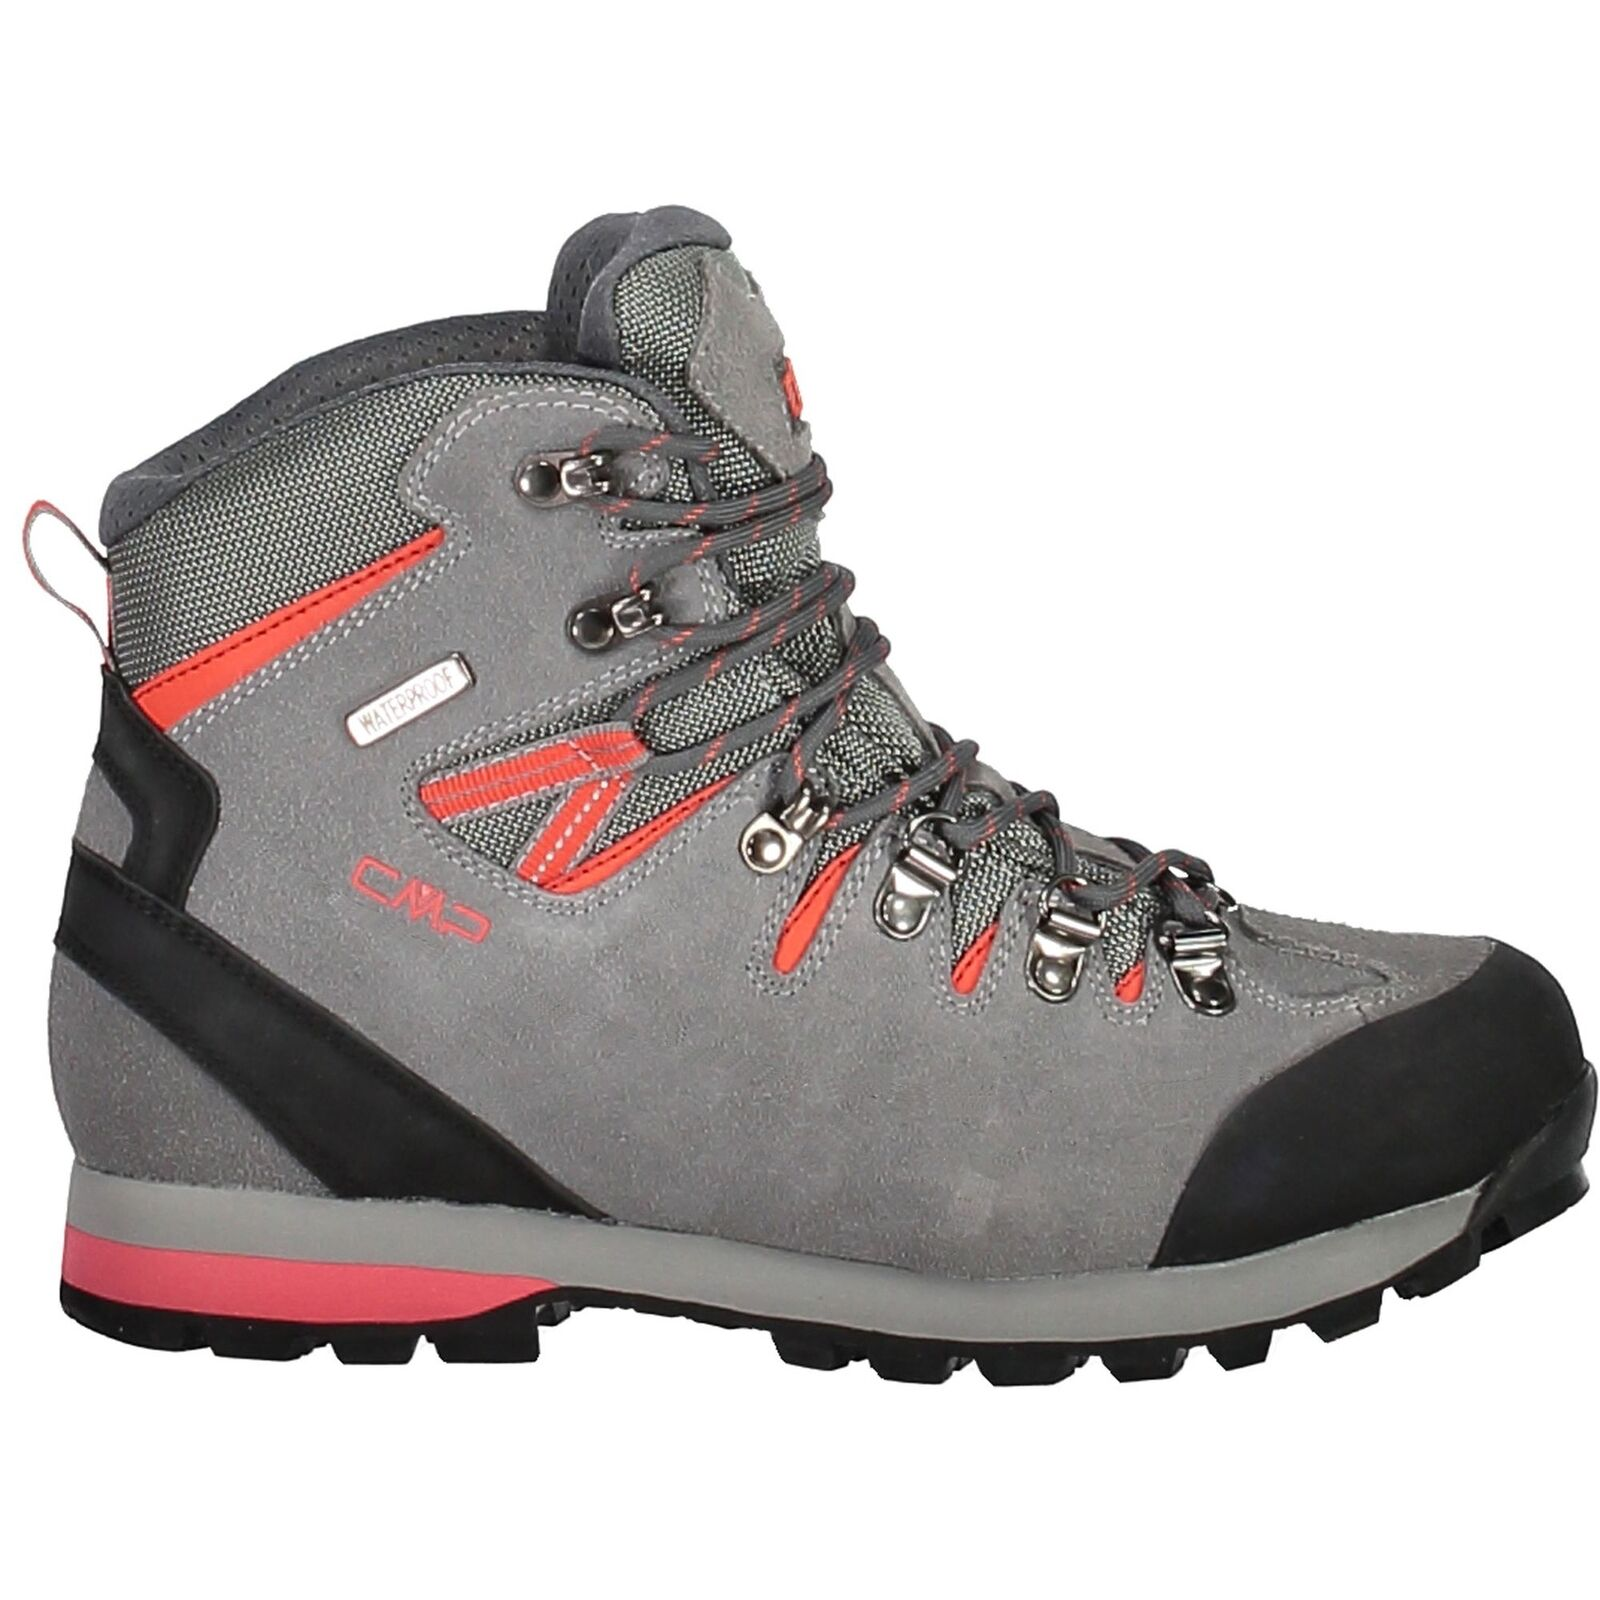 CMP Trekkingschuhe Outdoorschuh ARIETIS  WMN TREKKING SHOES WP grey wasserdicht  good quality